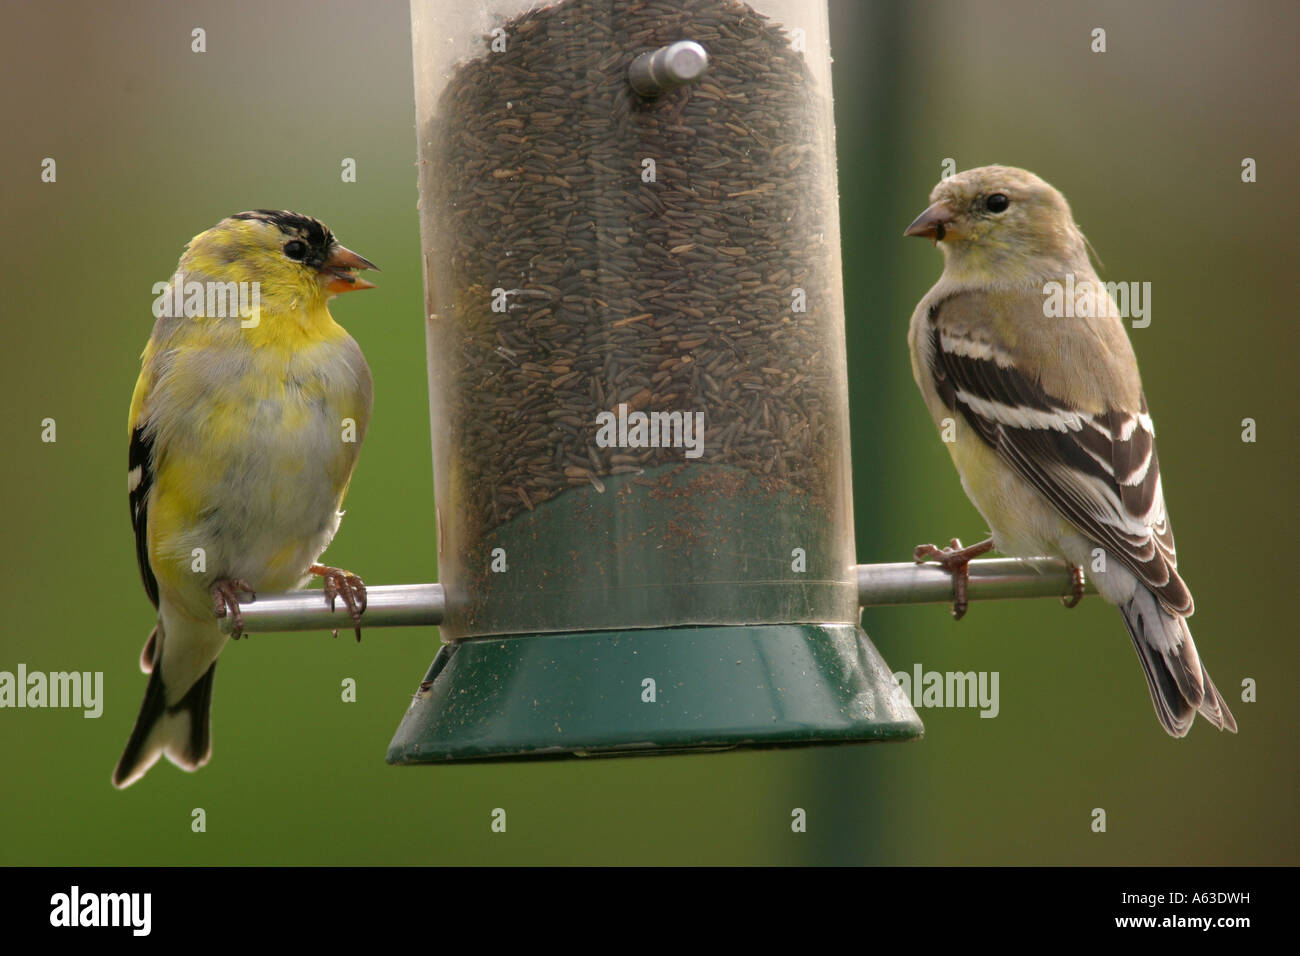 feeder pacific join july huge attract a img nw foods black hagg goldfinches feeders finch by bird and oregon headed birder greg washington two this to lake grosbeak your thistle backyard purple part county birds at american on